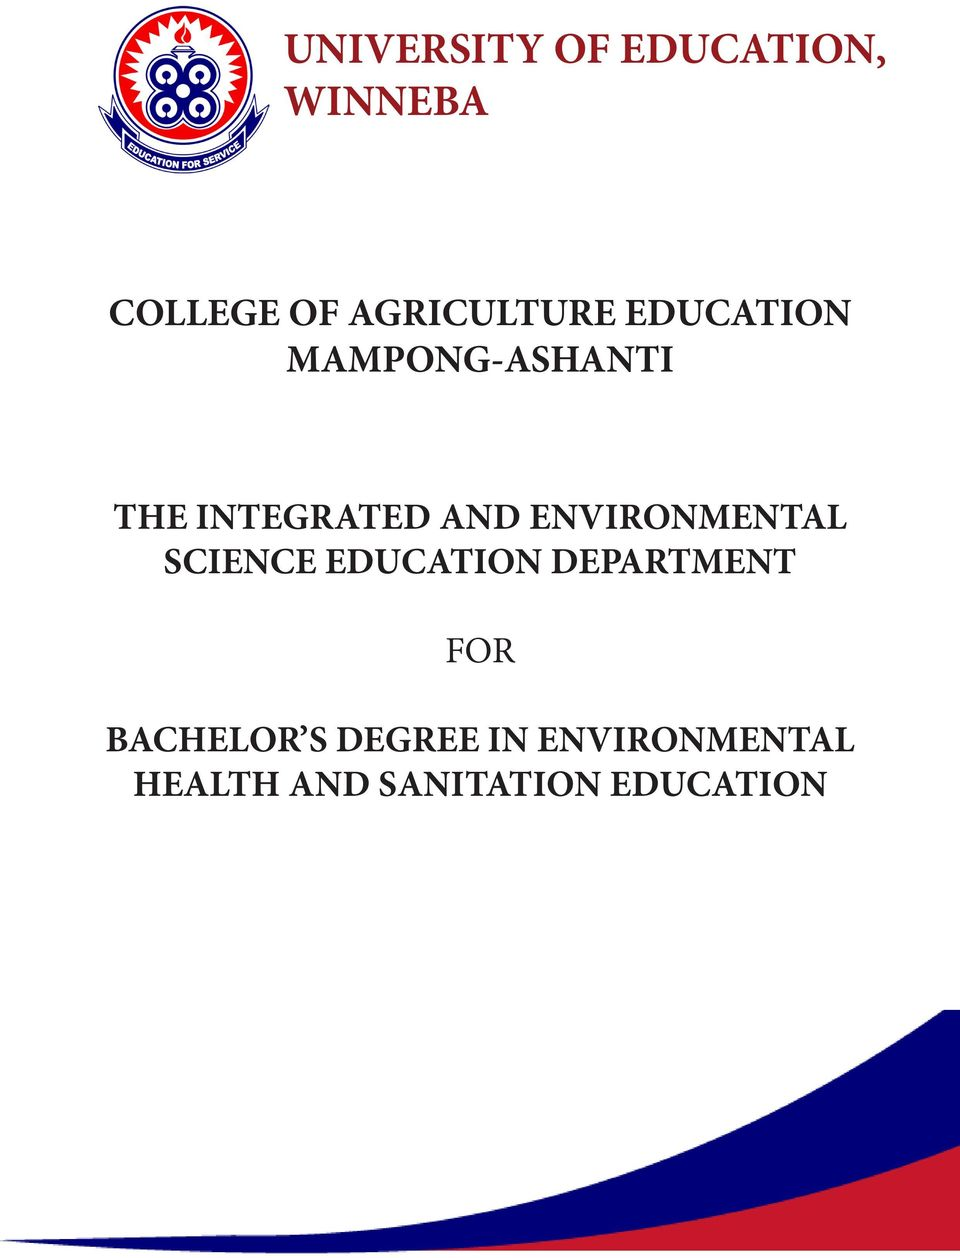 AND ENVIRONMENTAL SCIENCE EDUCATION DEPARTMENT FOR